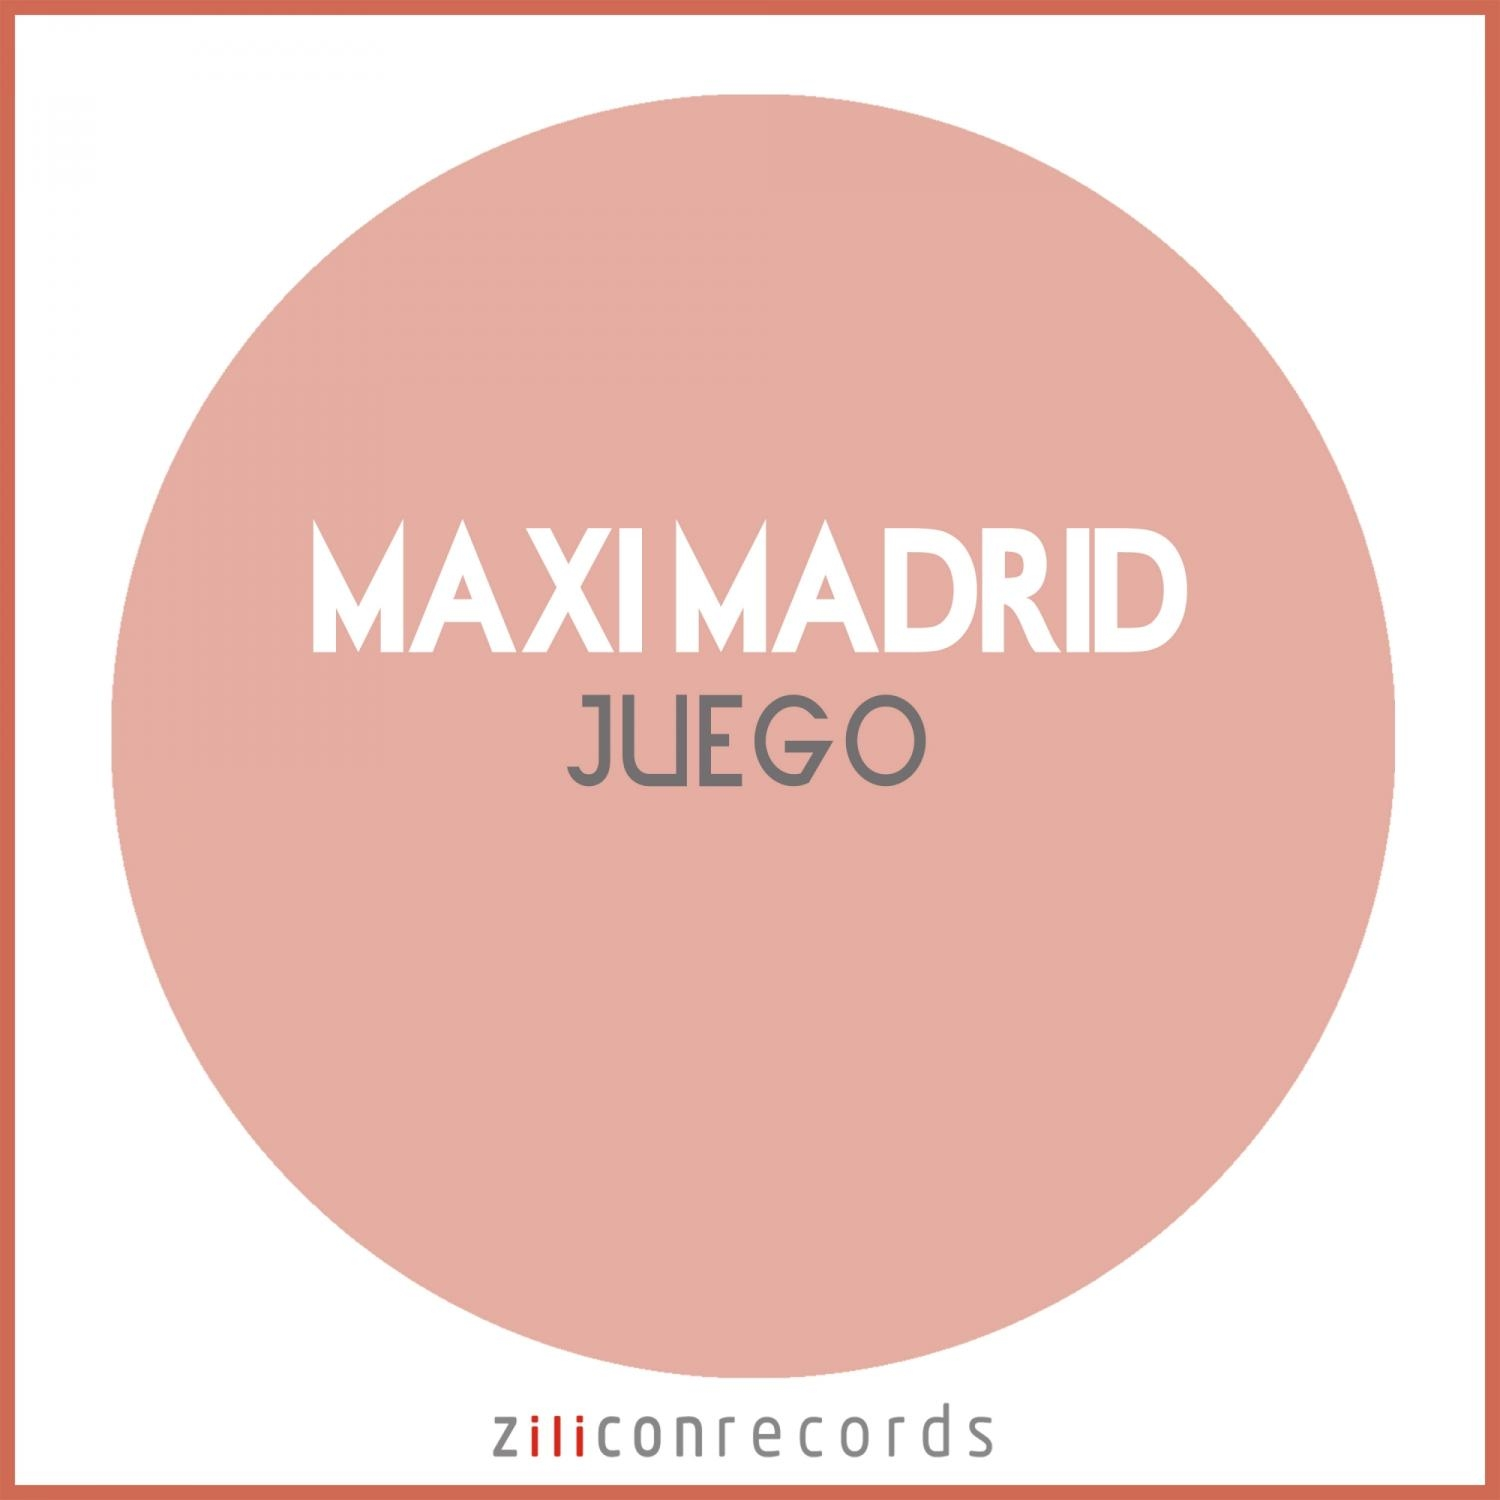 Maxi Madrid, Guille Suarez - Orgon (Guille Suarez Mix)